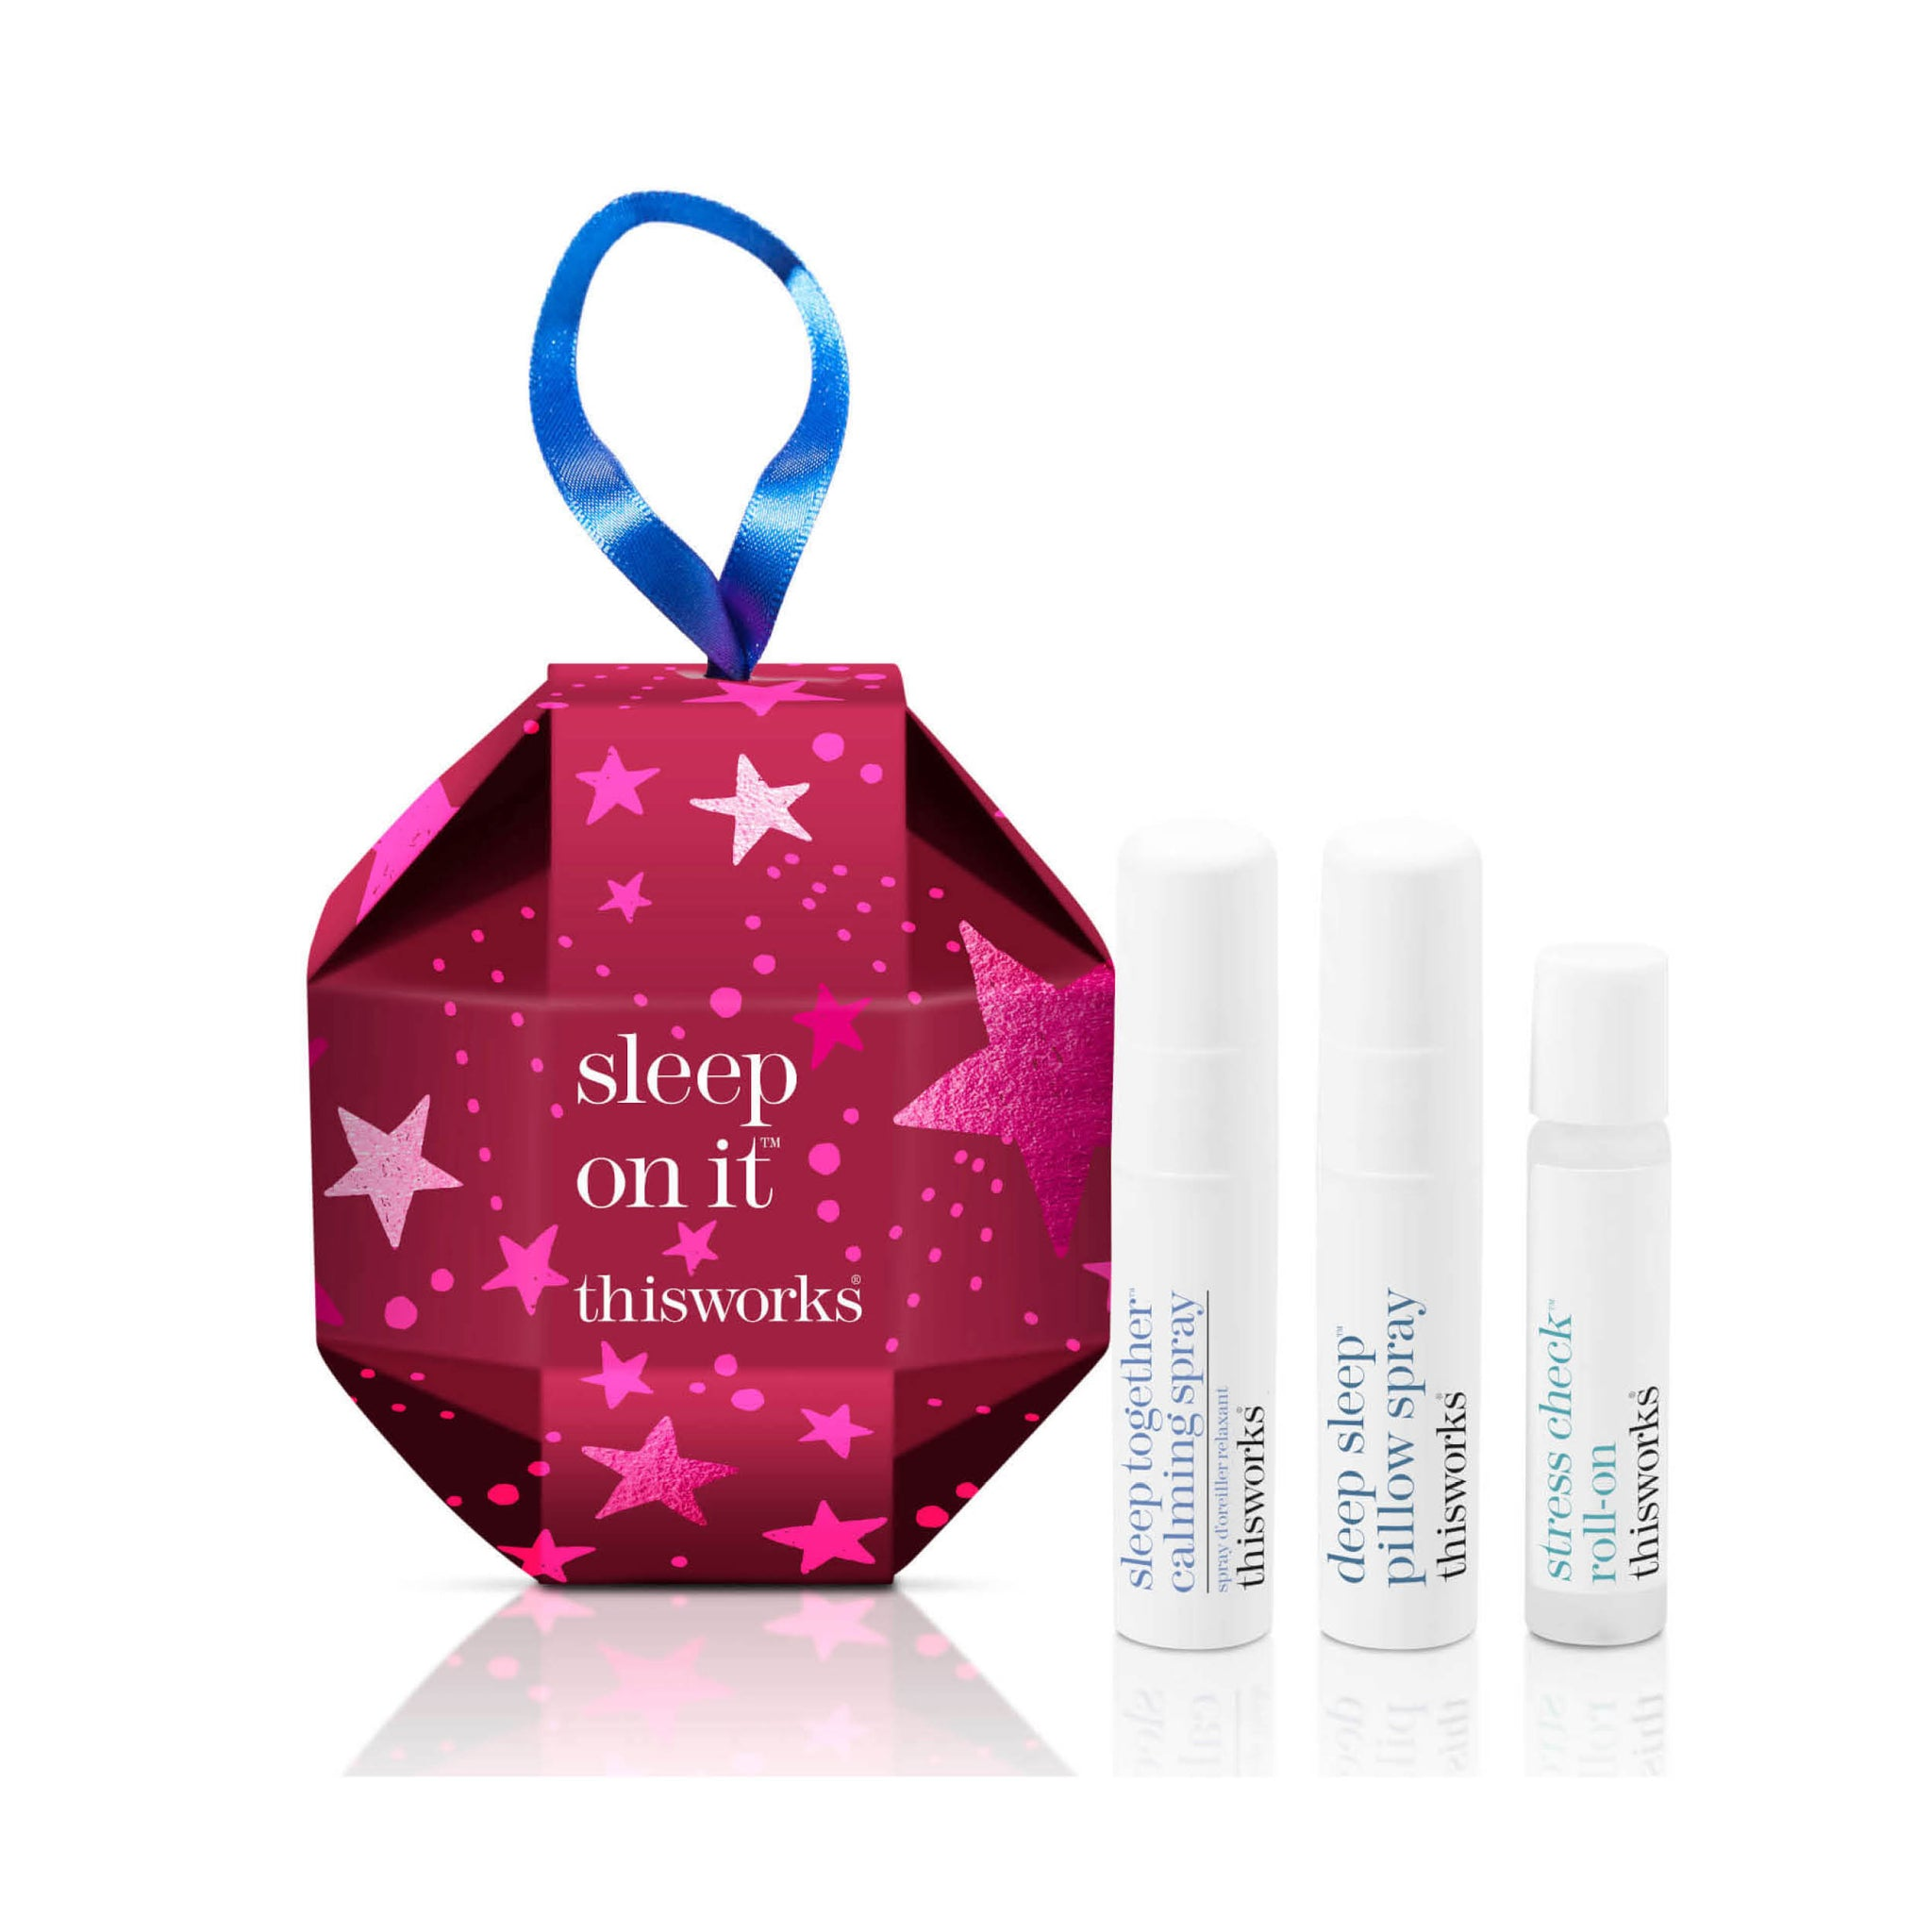 thisworks Sleep on It Gift Set